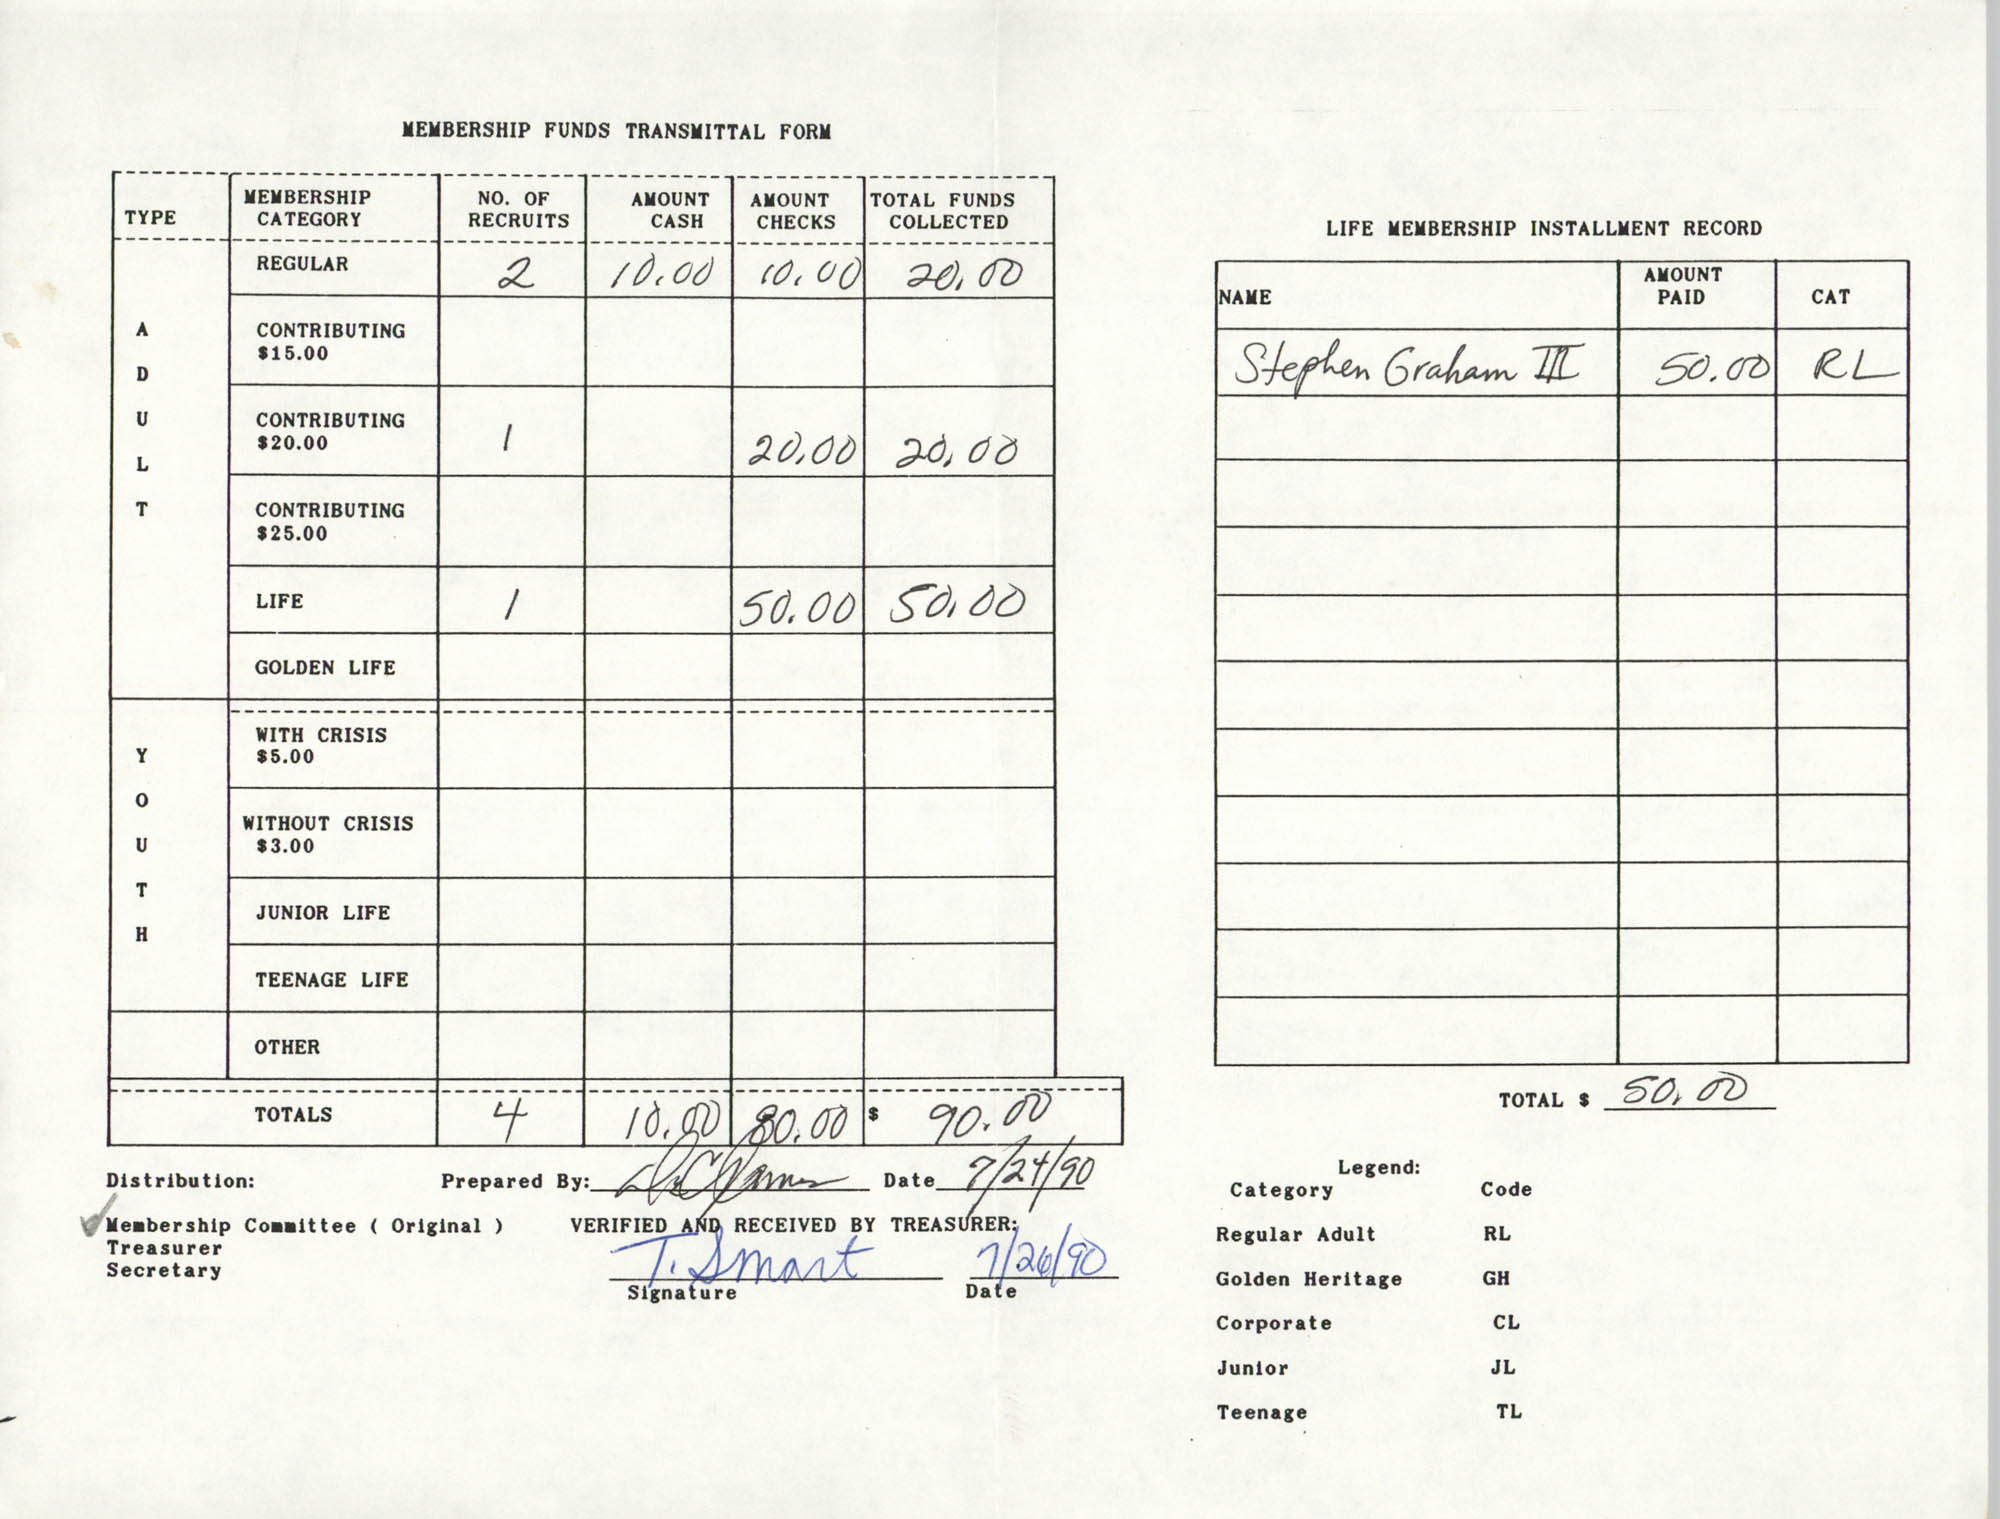 Charleston Branch of the NAACP Funds Transmittal Forms, July 1990, Page 3